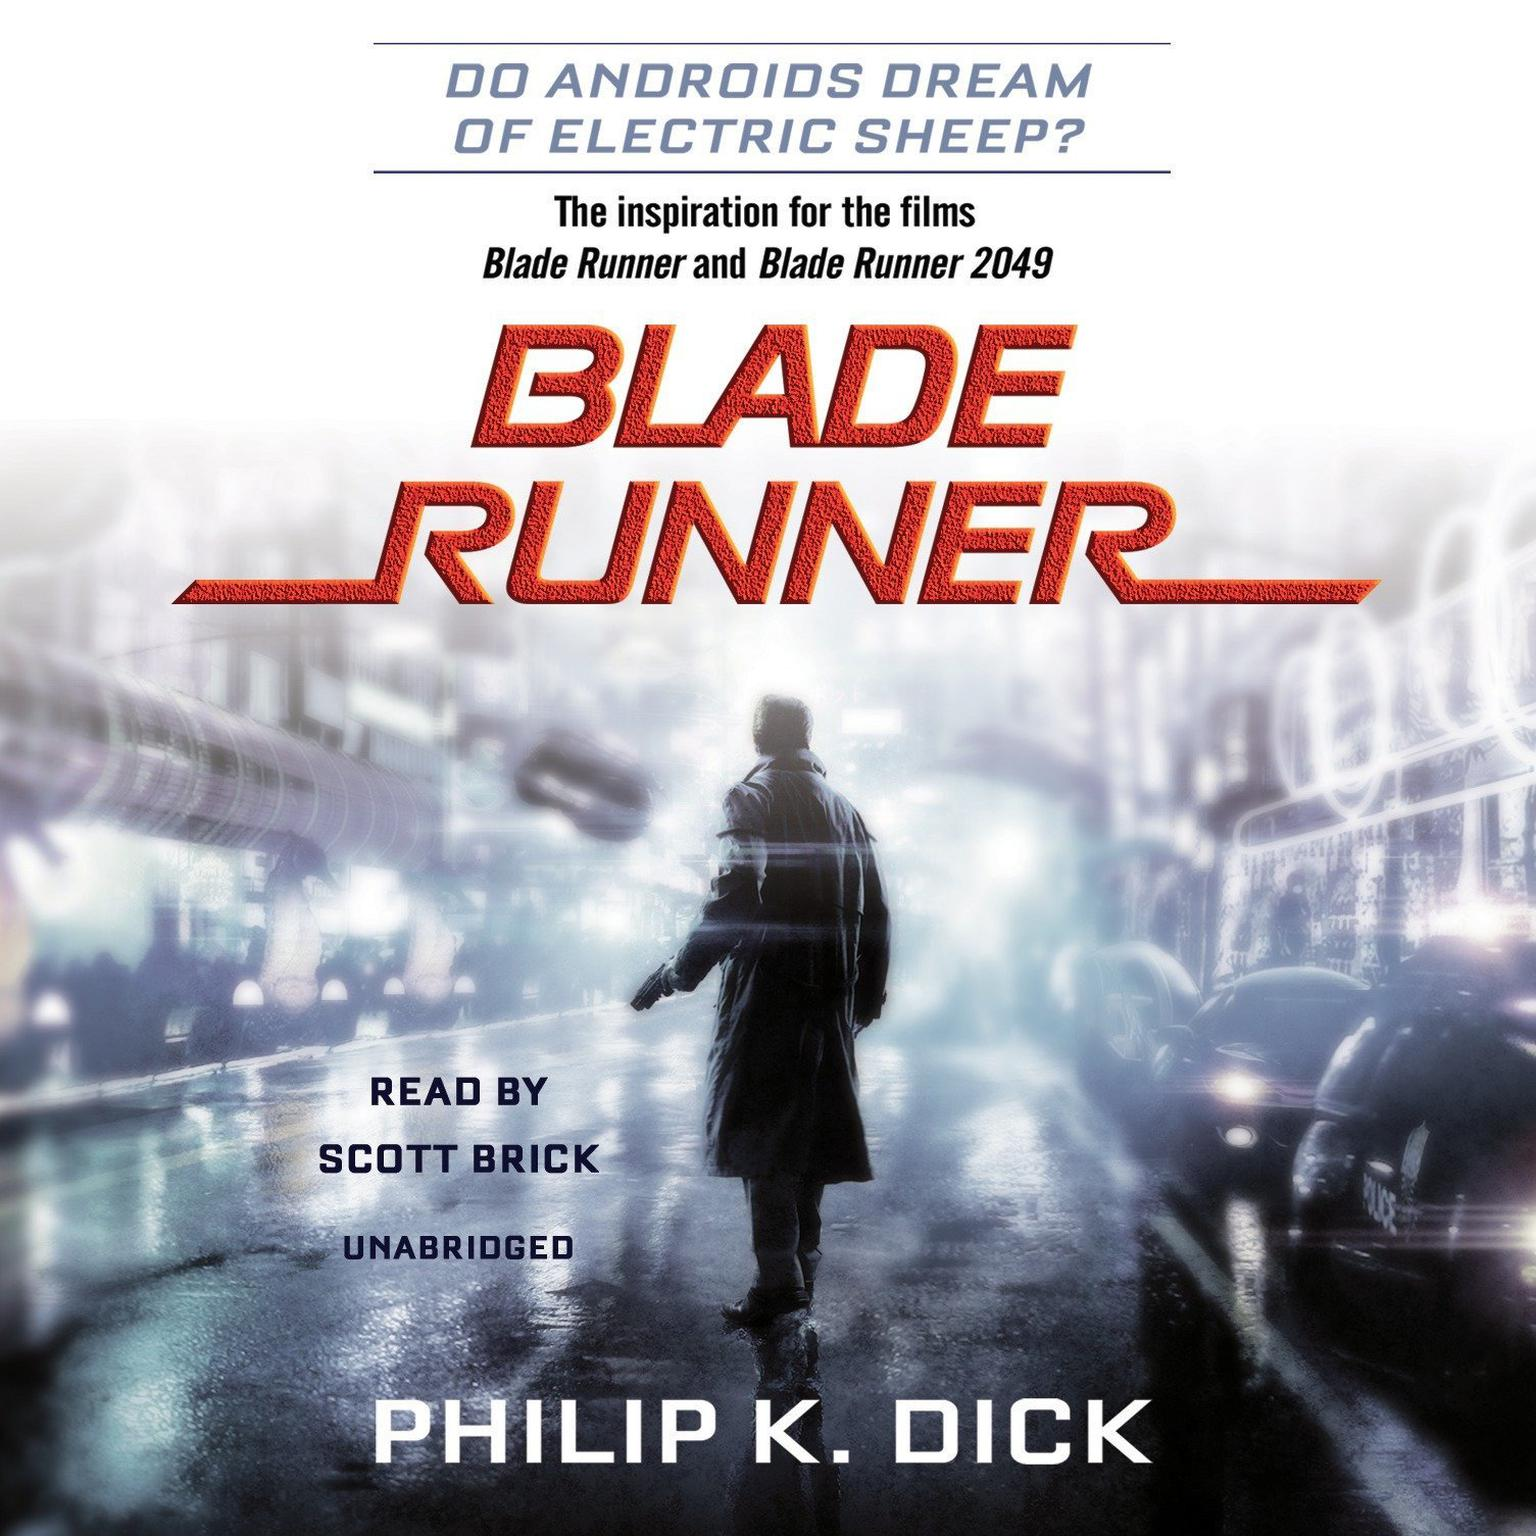 Printable Blade Runner: Based on the novel Do Androids Dream of Electric Sheep? by Philip K. Dick Audiobook Cover Art